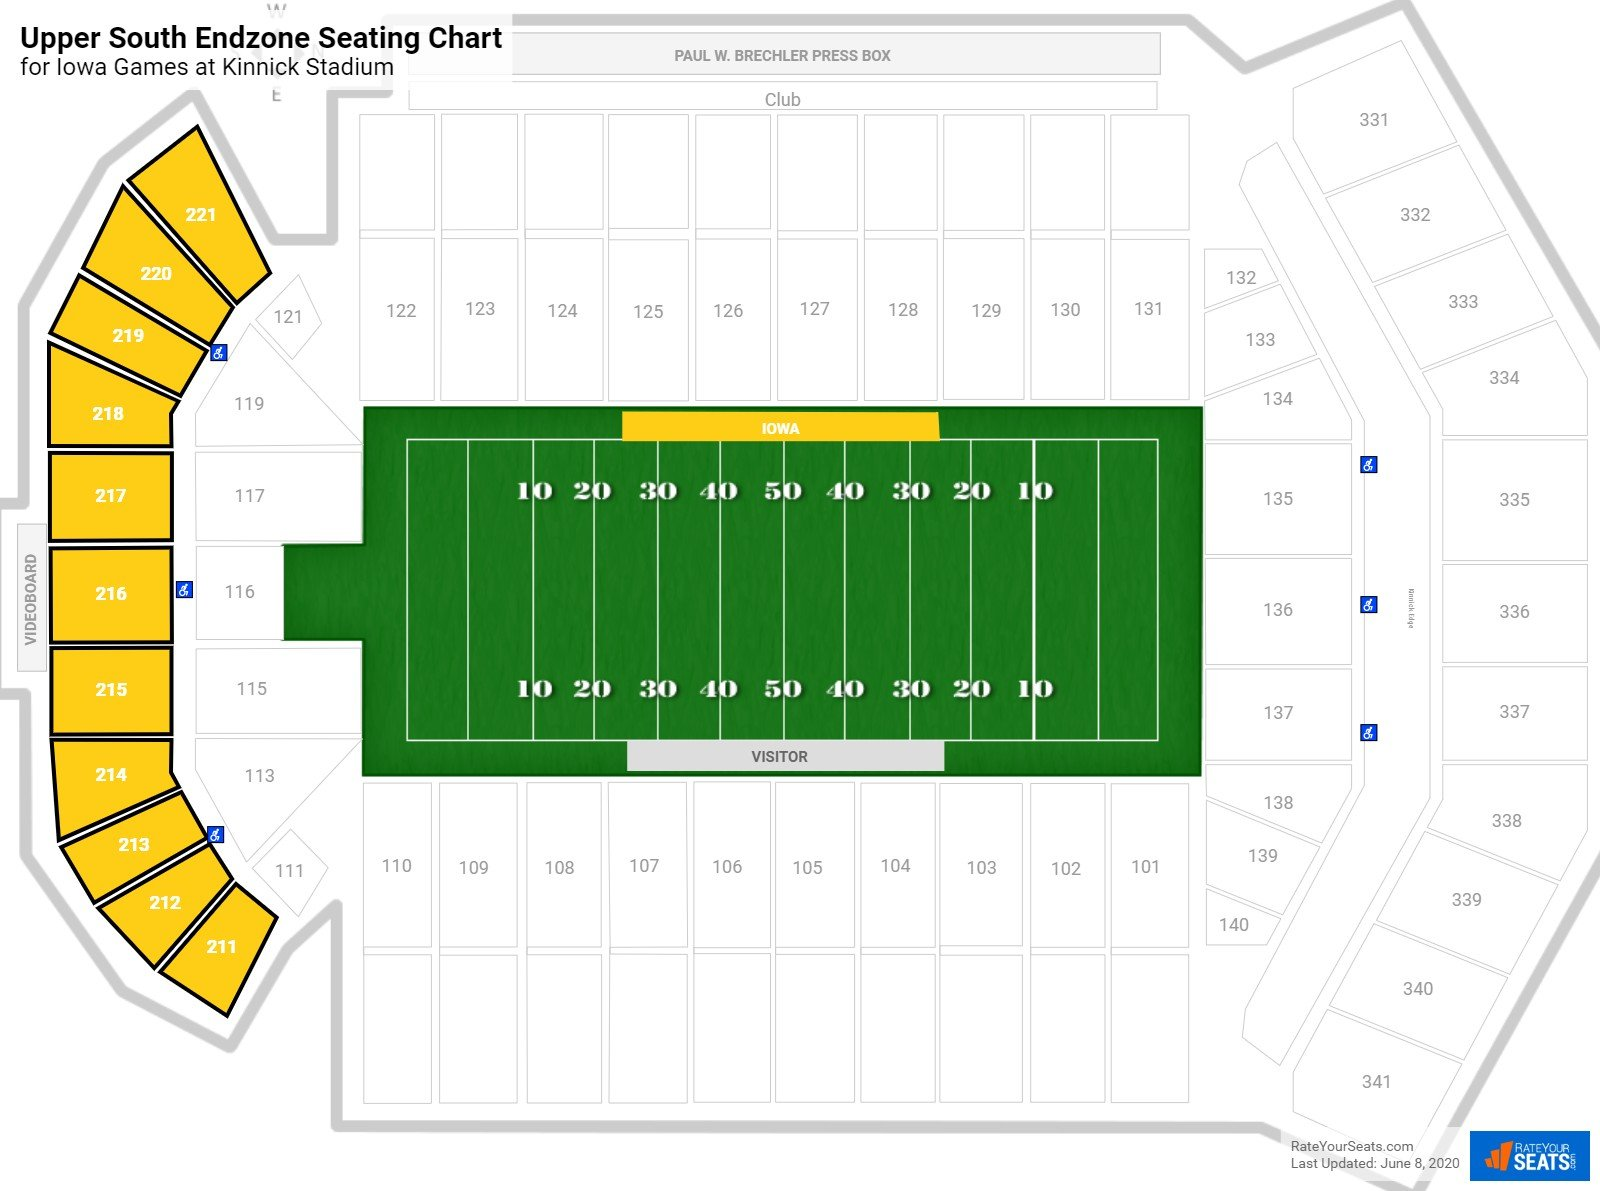 Kinnick Stadium Upper South Endzone seating chart